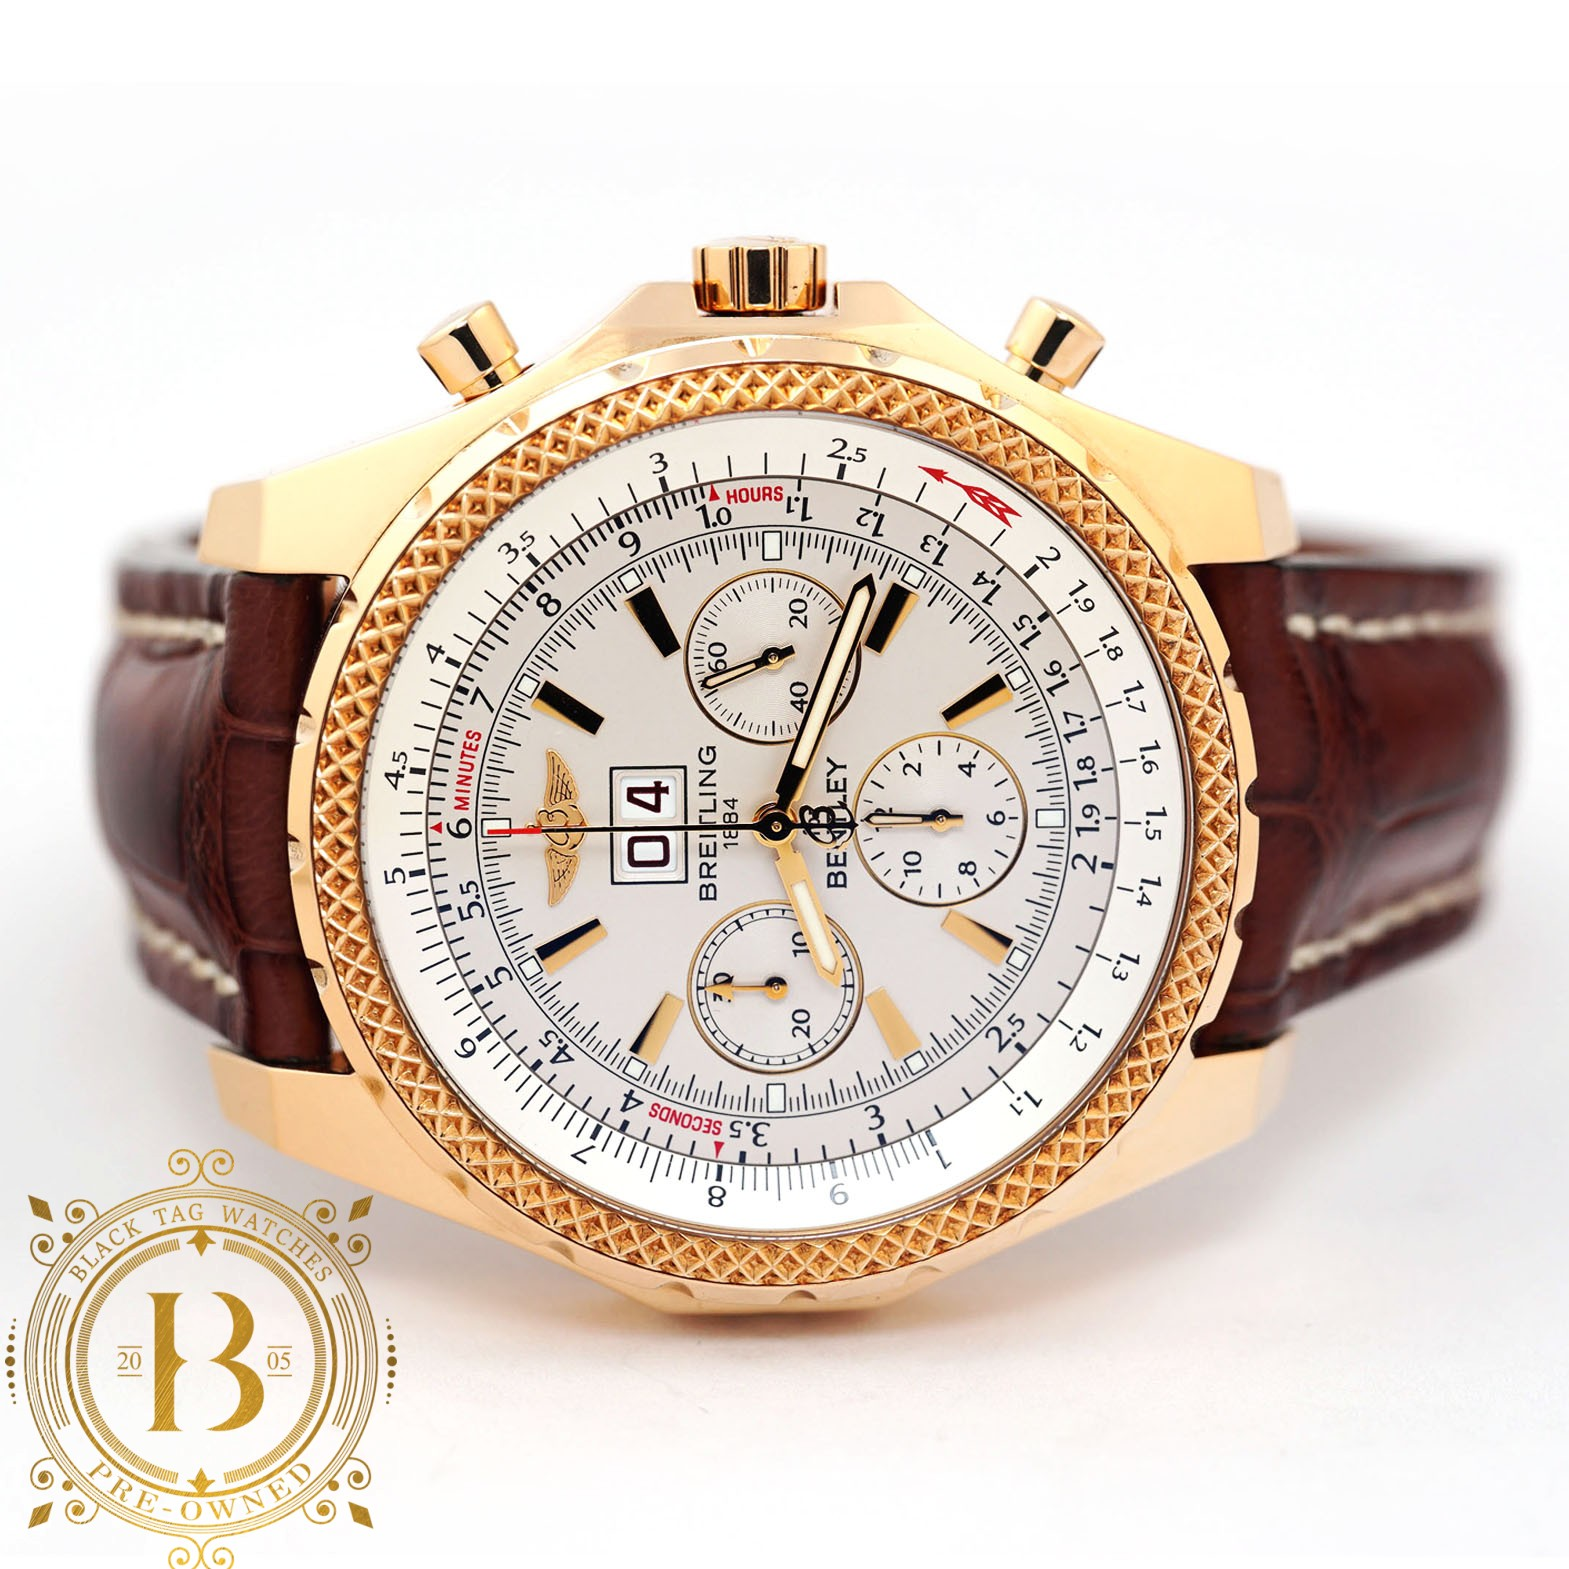 Breitling For Bentley 6 75 Chronograph Watch K44362 For 14 000 Black Tag Watches Pre Owned